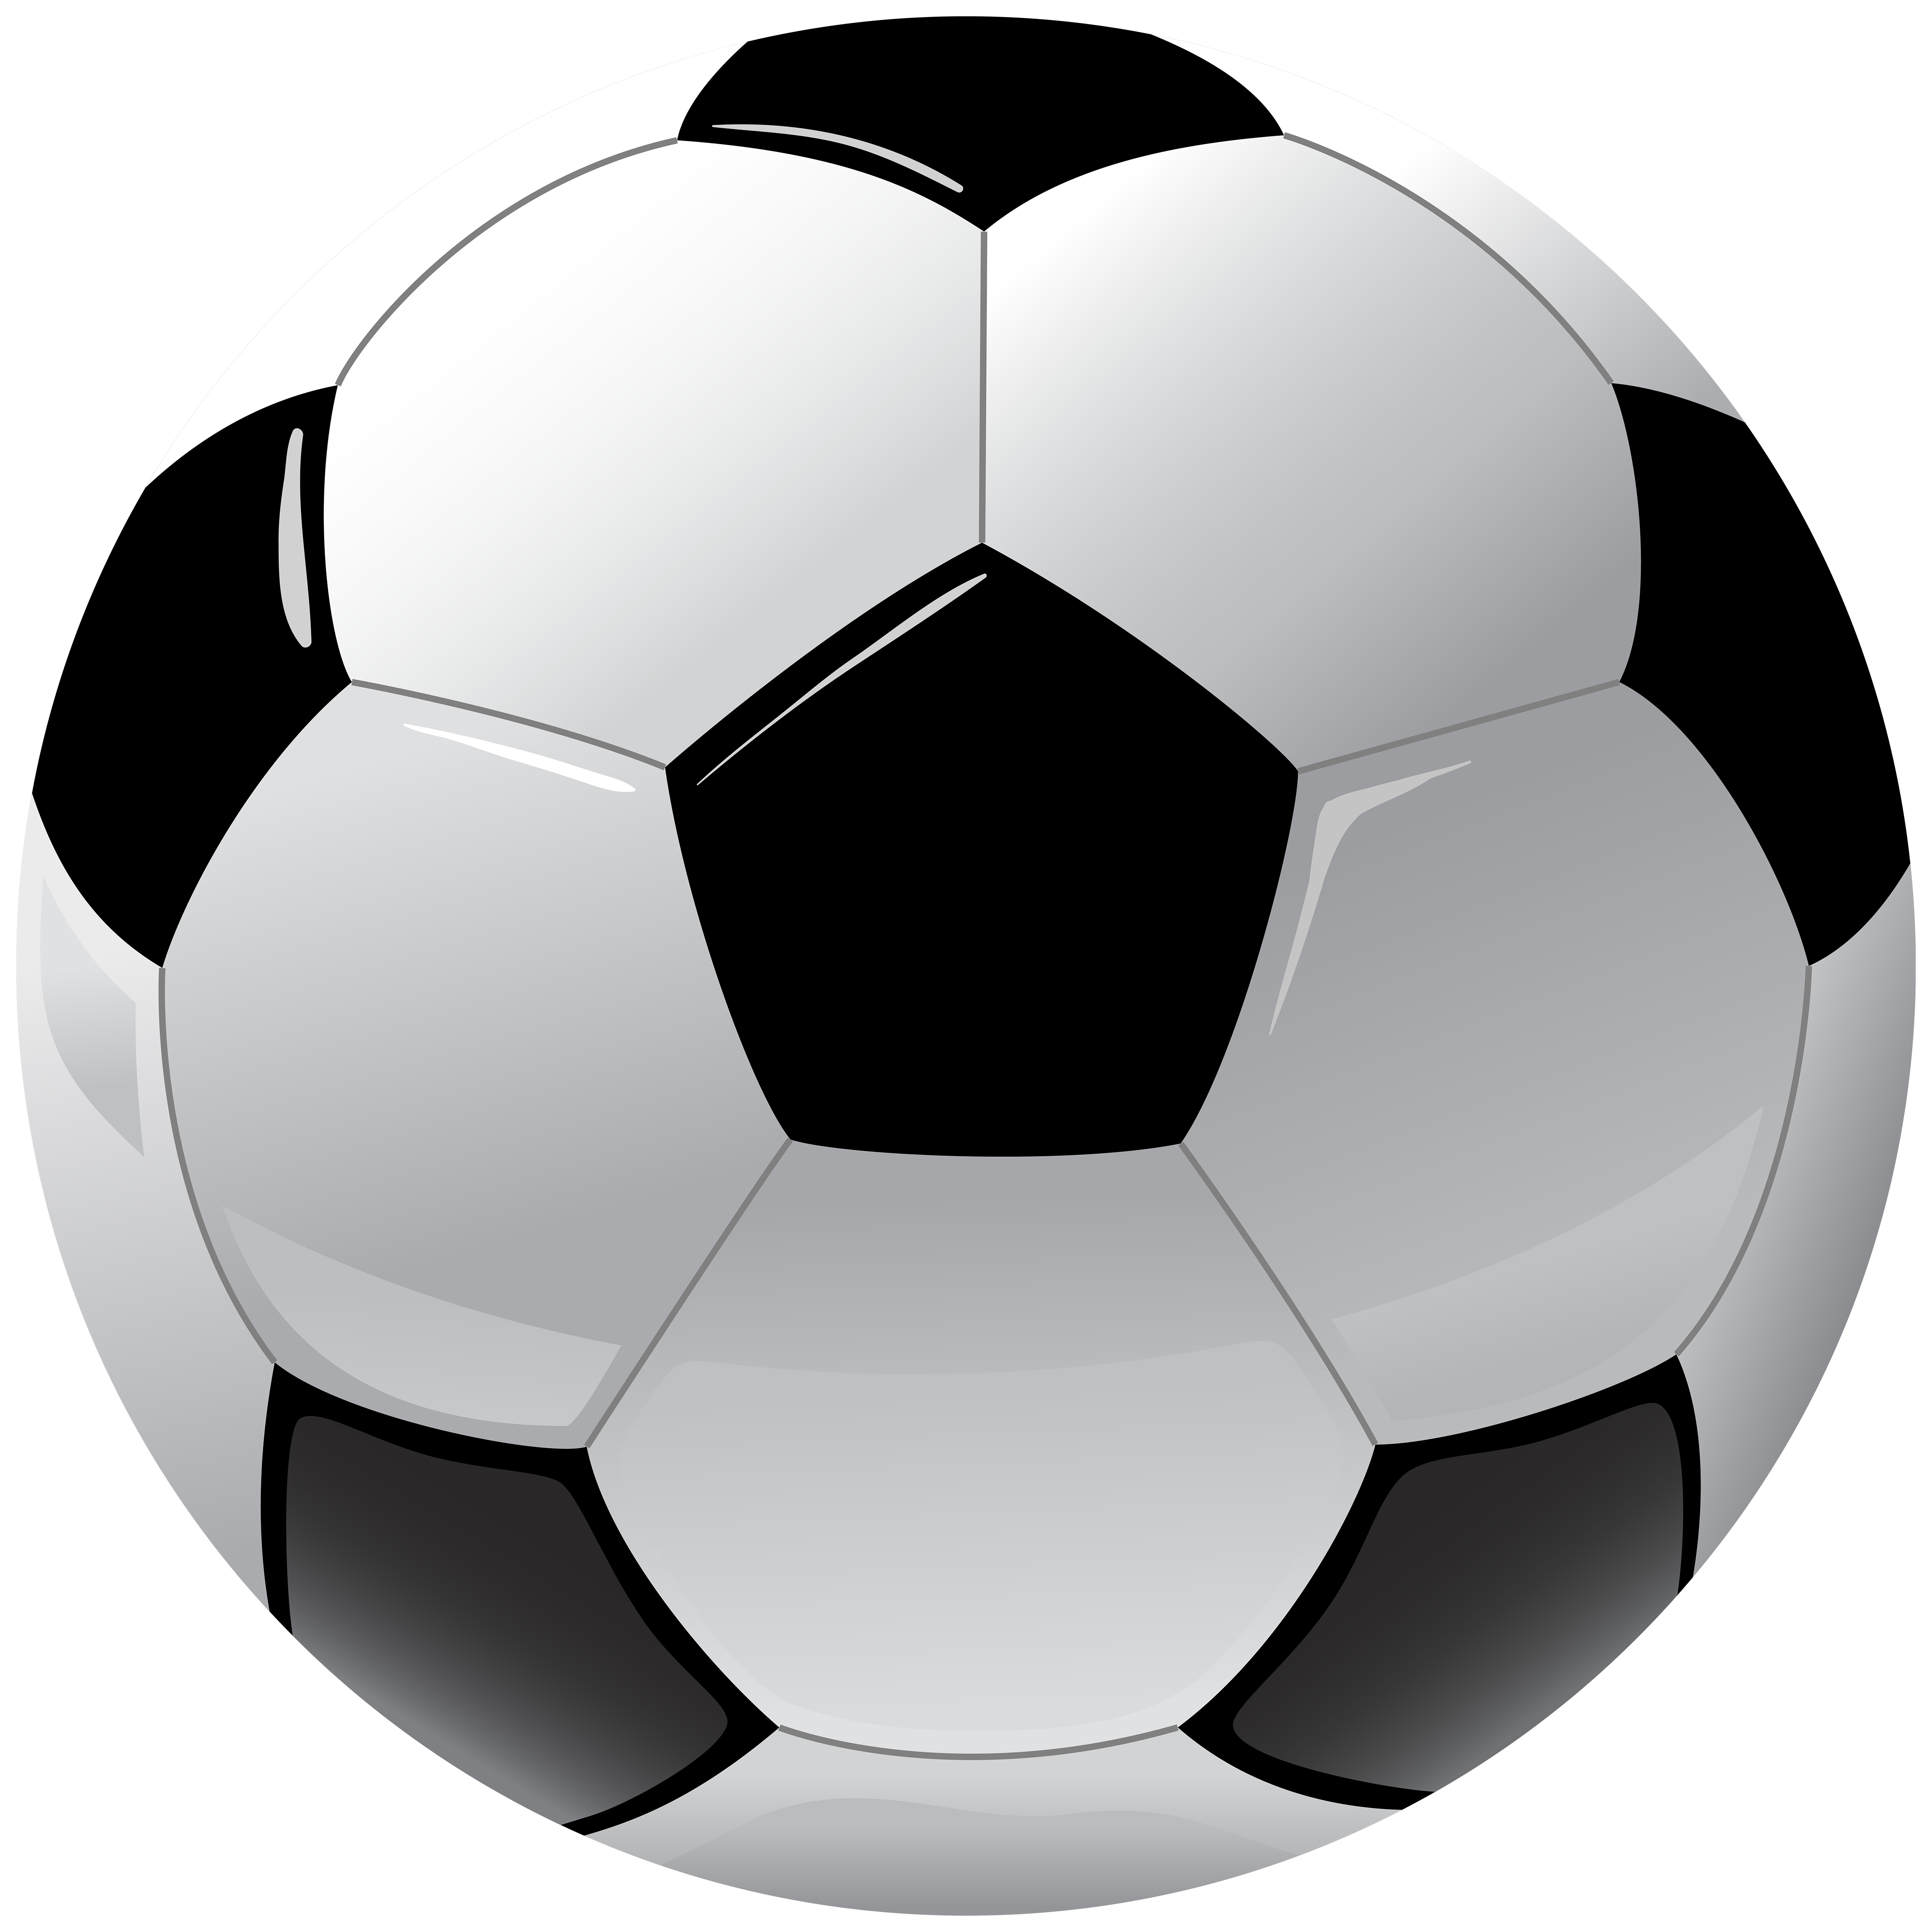 Ball Hd Image PNG Images